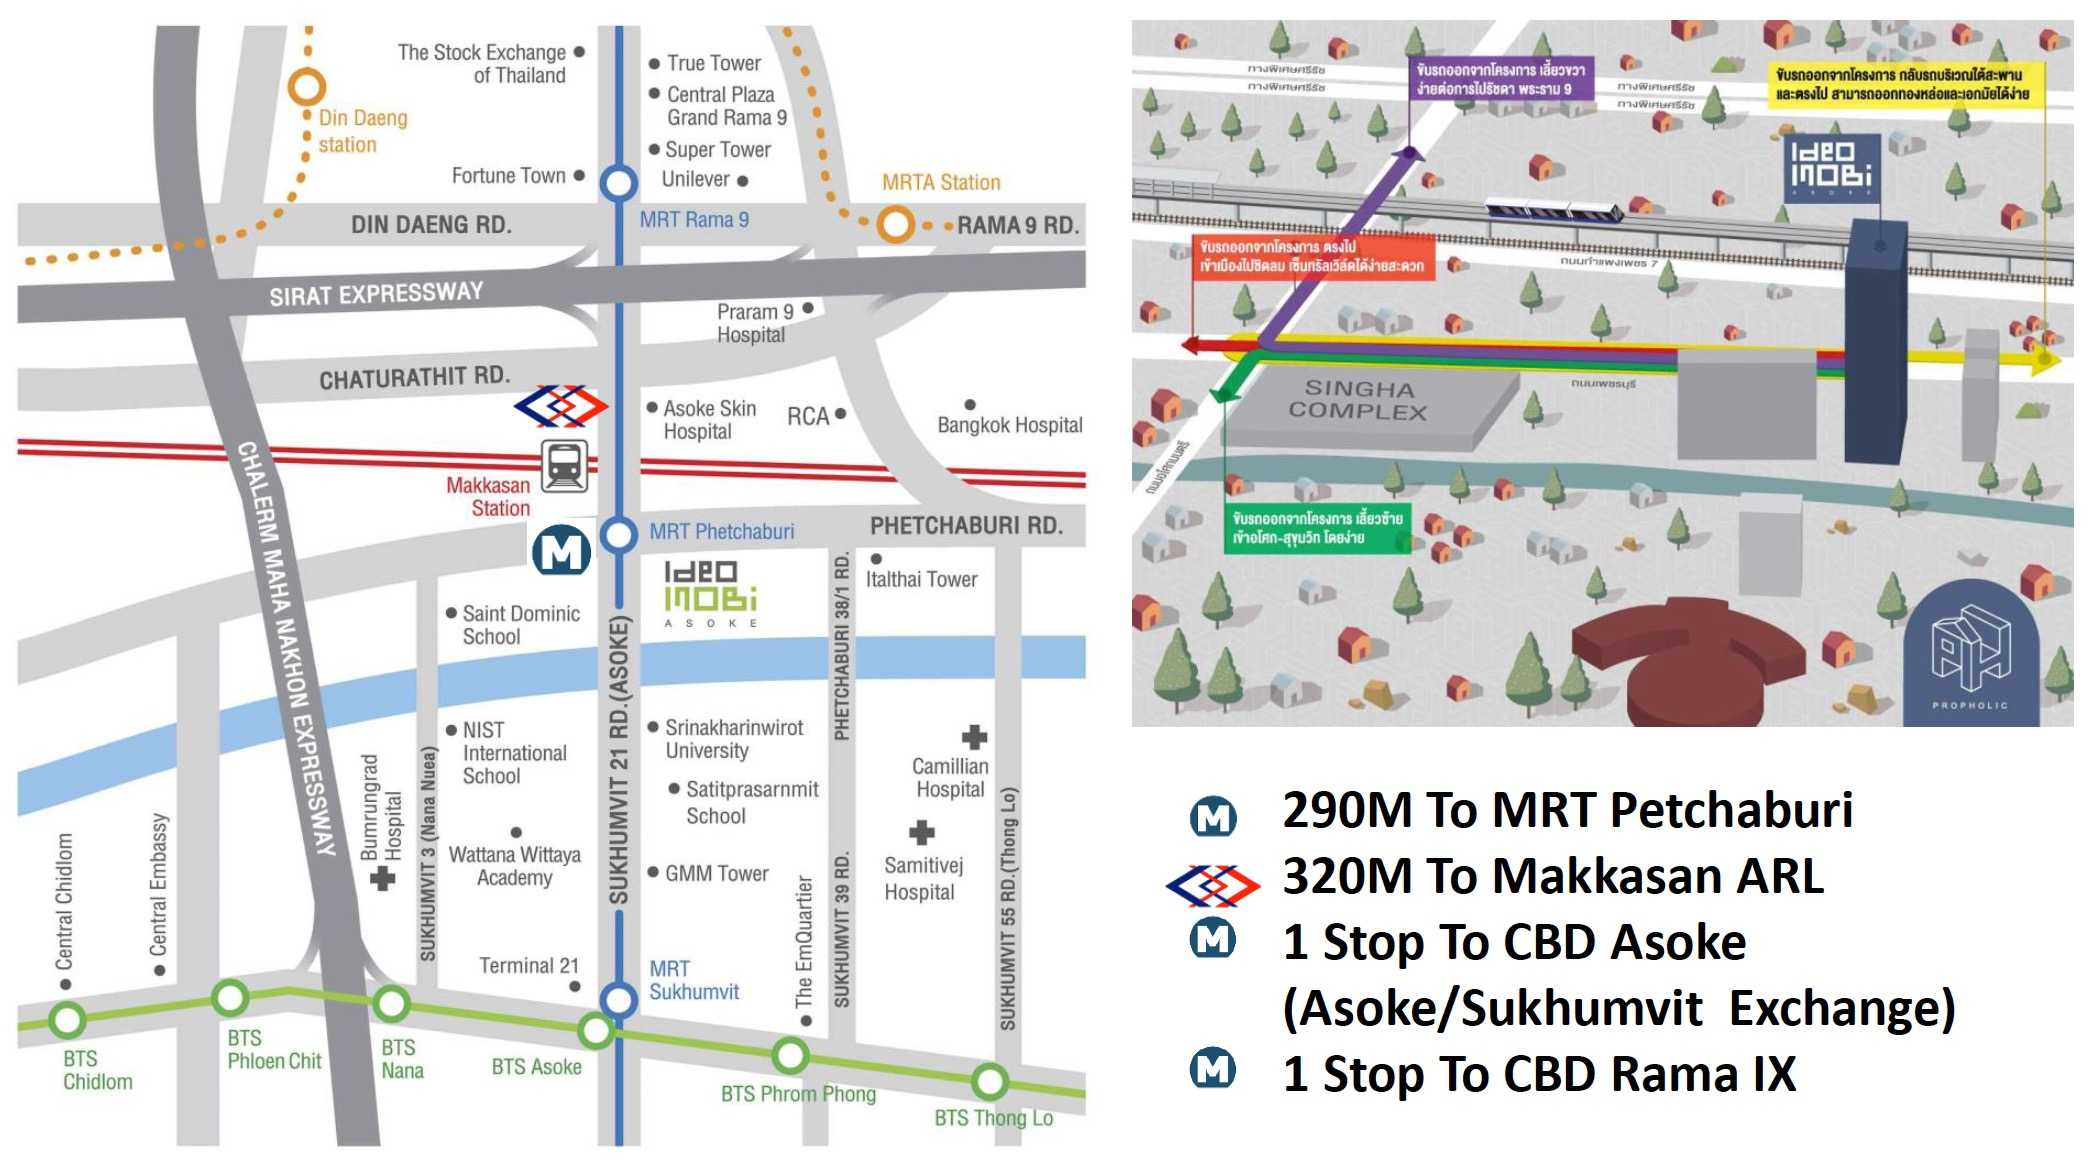 ideo-mobi-asoke-location-map